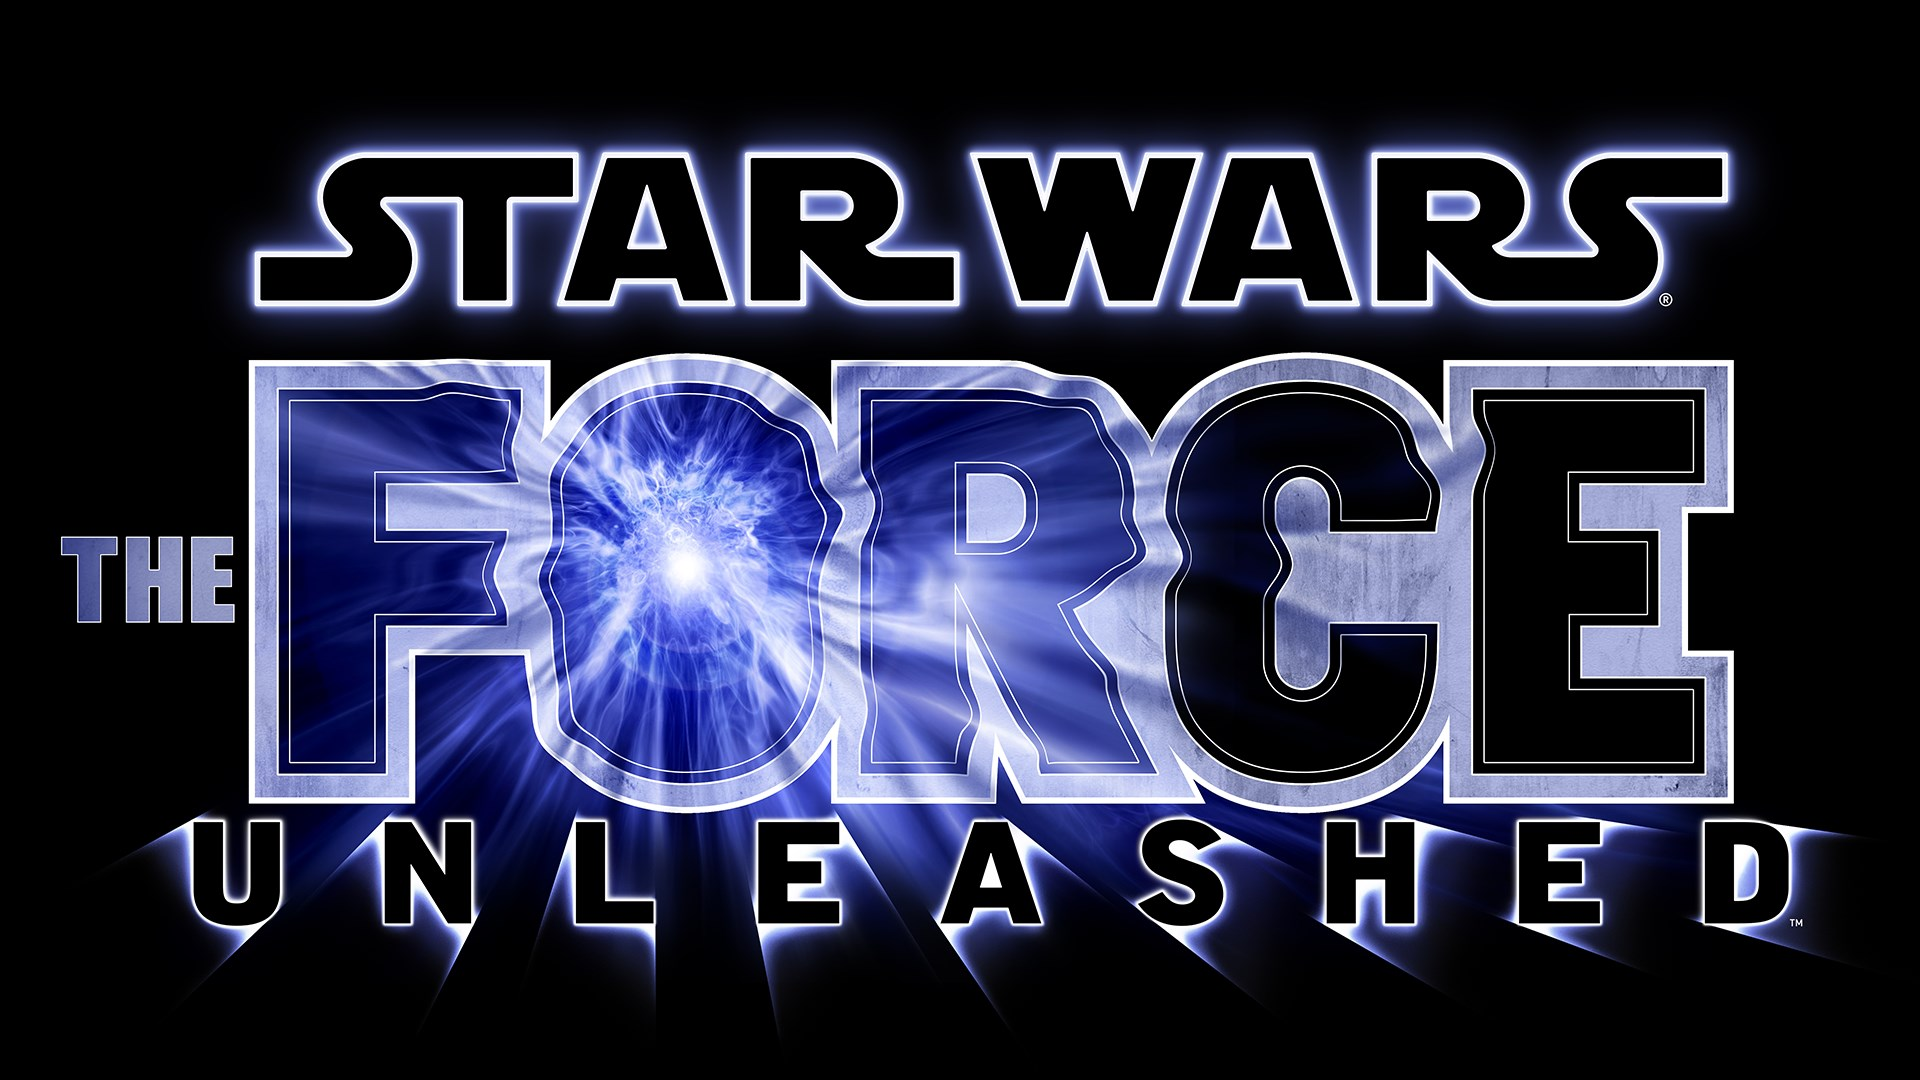 New Indiegala Giveaways: Star Wars The Force Unleashed